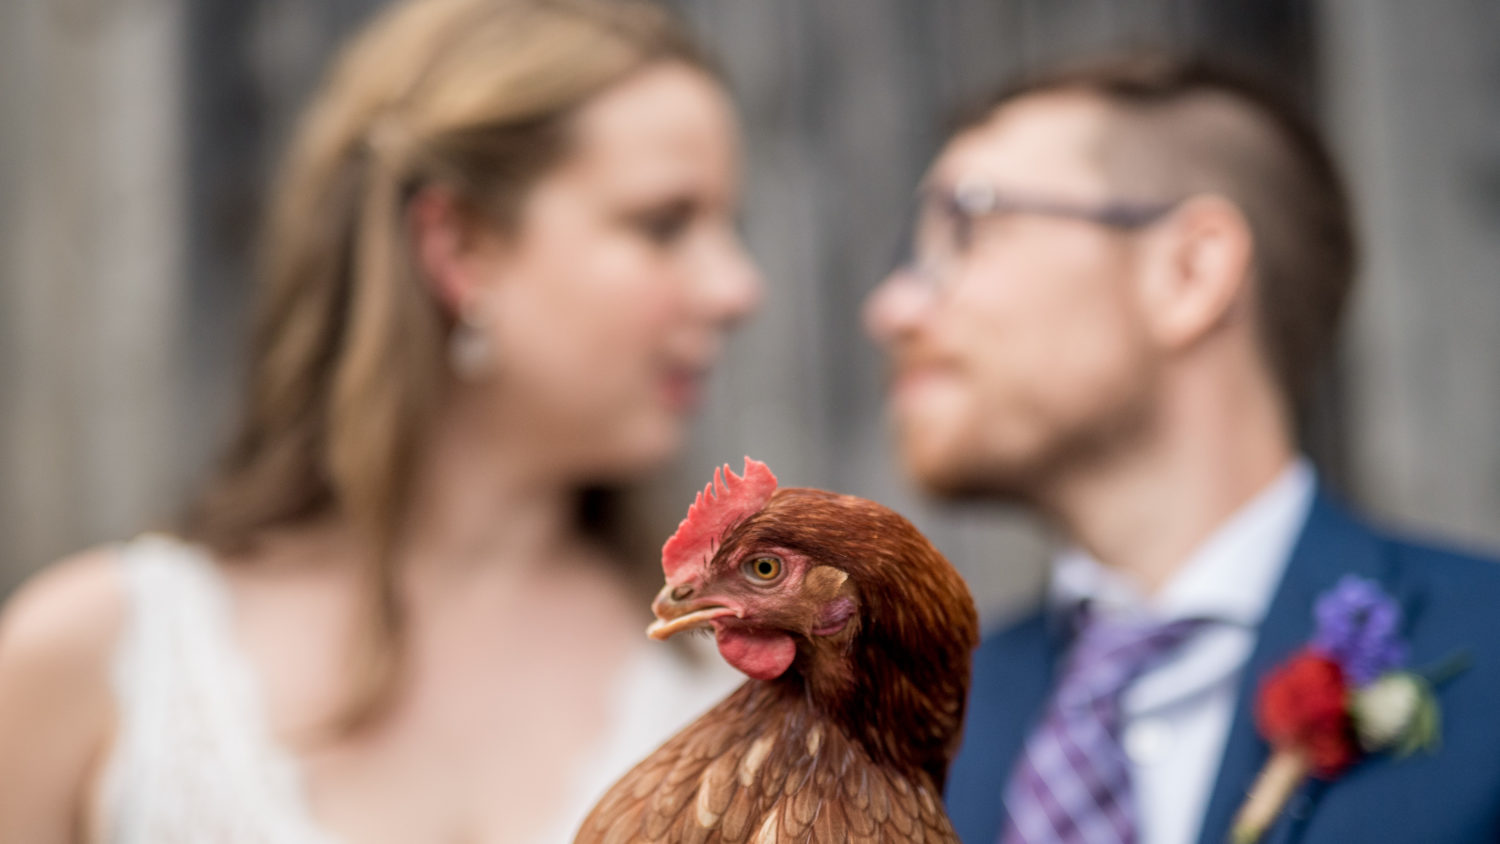 Hilarious chicken farm wedding photos